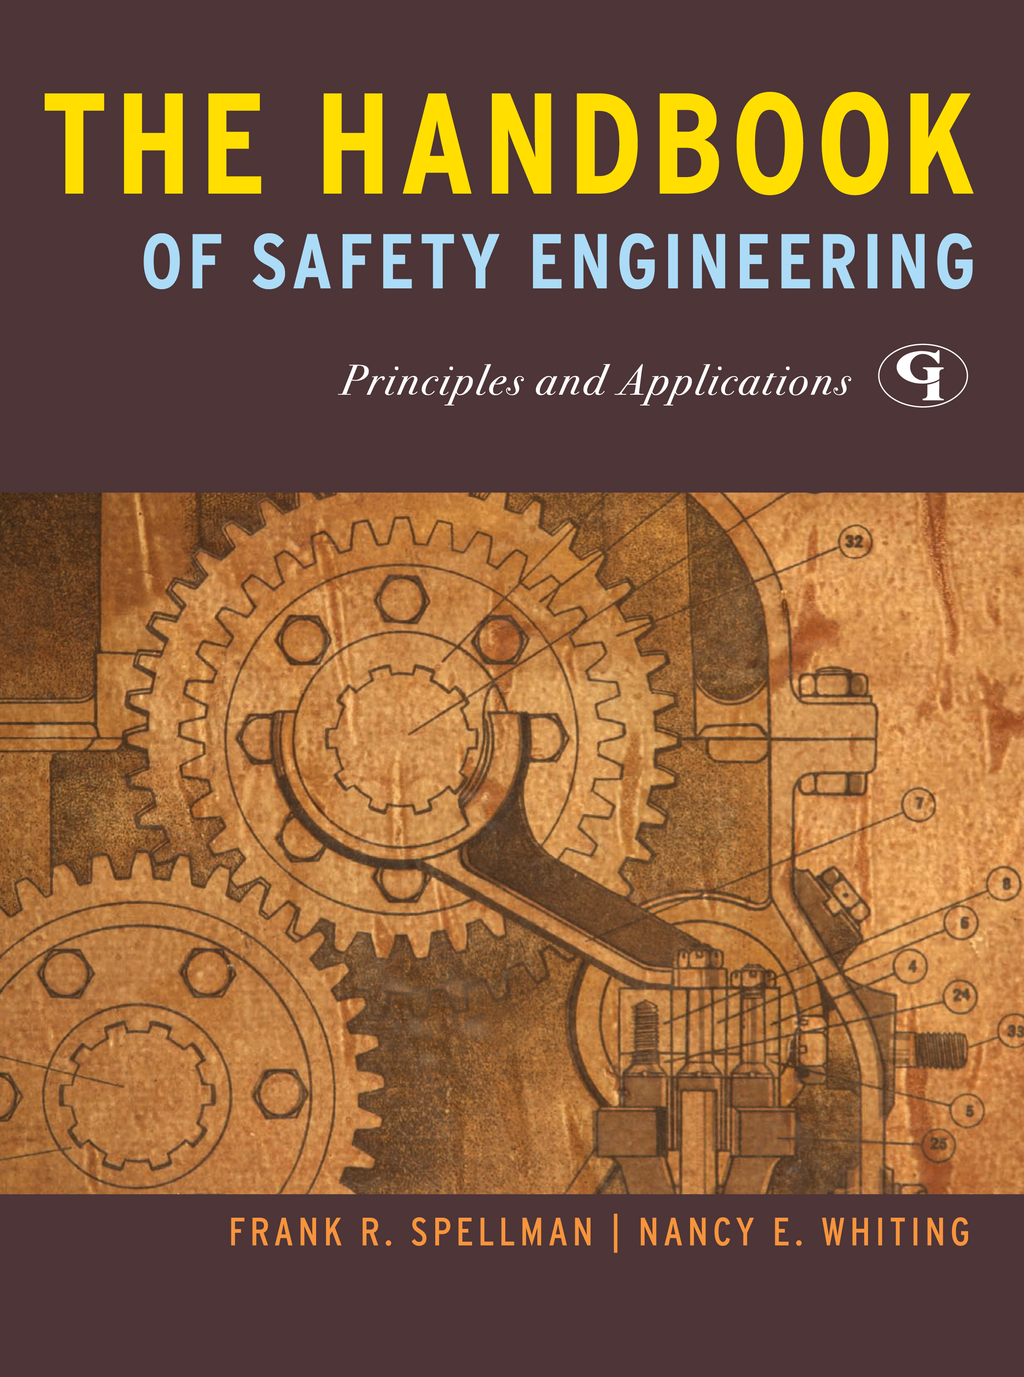 The Handbook of Safety Engineering